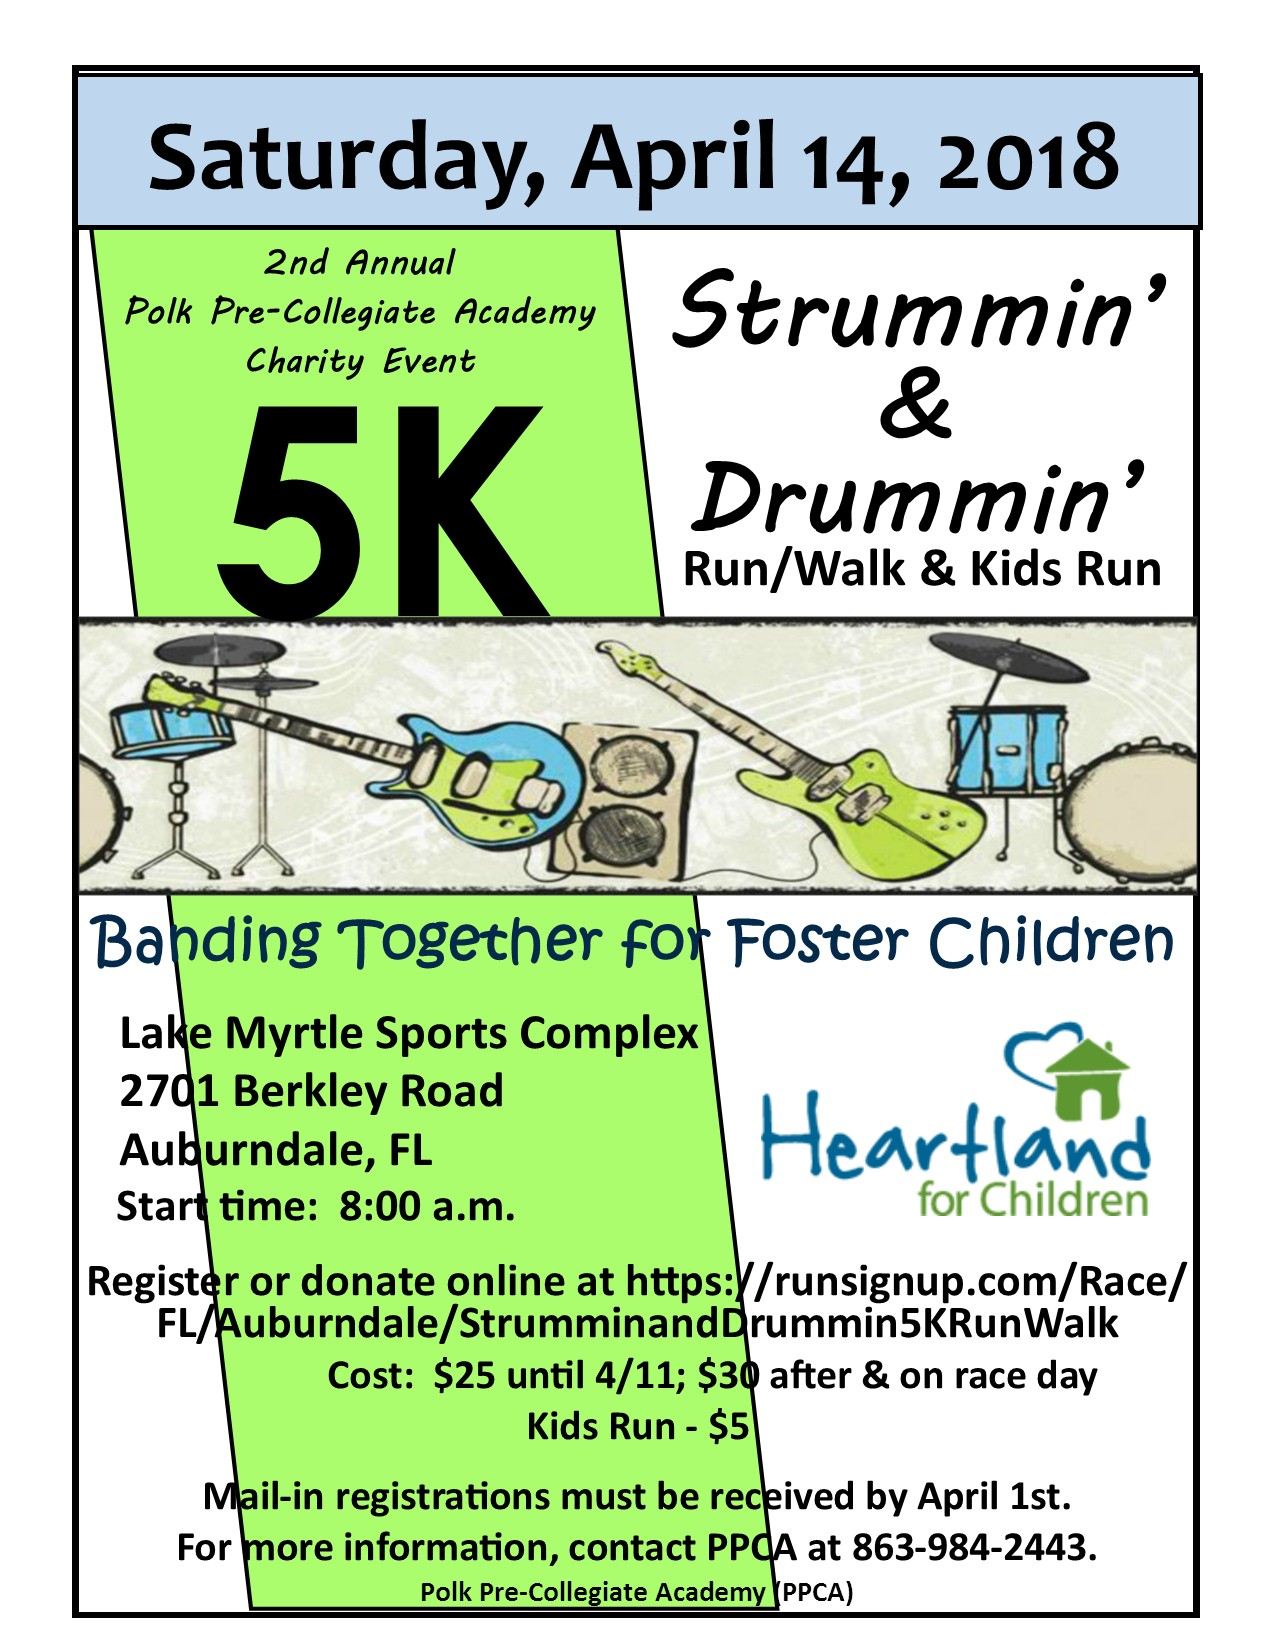 Strummin' & Drummin' 5k Walk/Run to benefit HFC